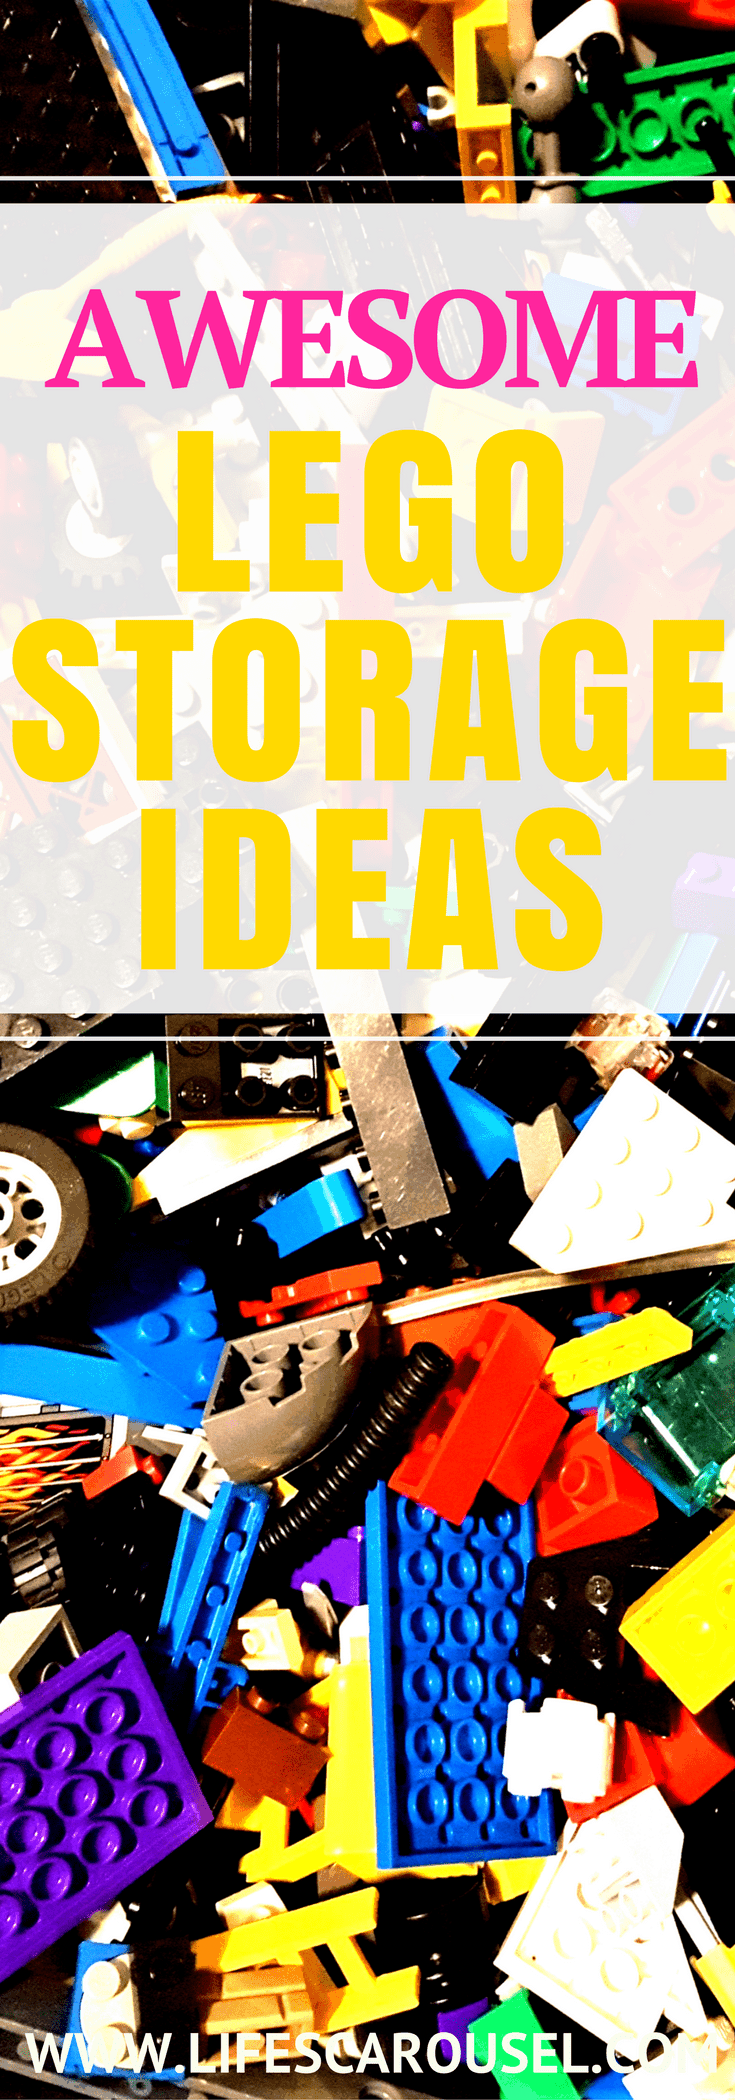 Lego Storage Ideas | The best ideas for storing Lego pieces, sets and minifgures. Lego table ideas. DIY Lego organzation, even using pieces from Ikea!